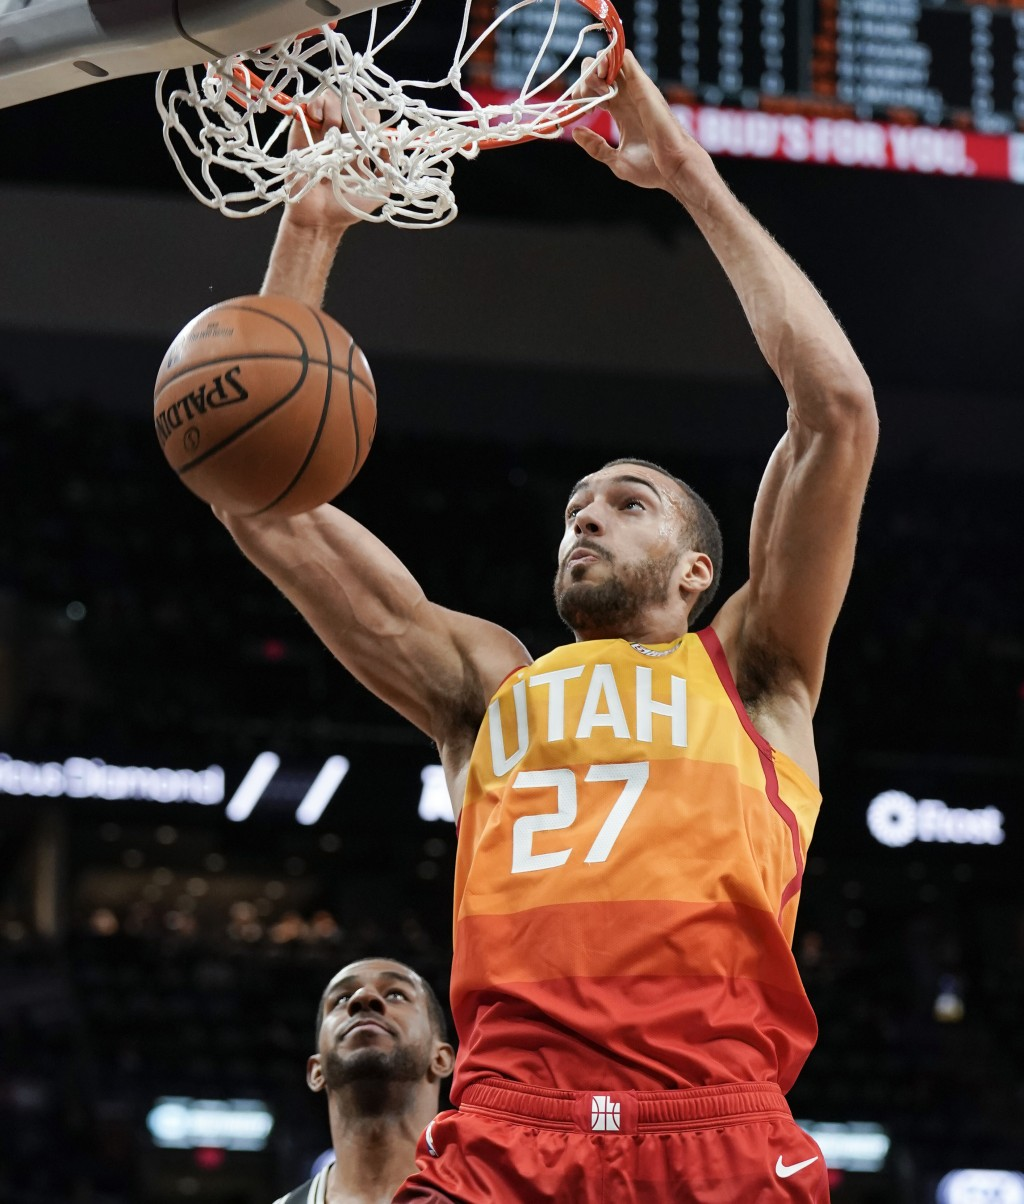 Utah Jazz center Rudy Gobert (27) dunks as San Antonio Spurs forward LaMarcus Aldridge watches during the first half of an NBA basketball game, Sunday